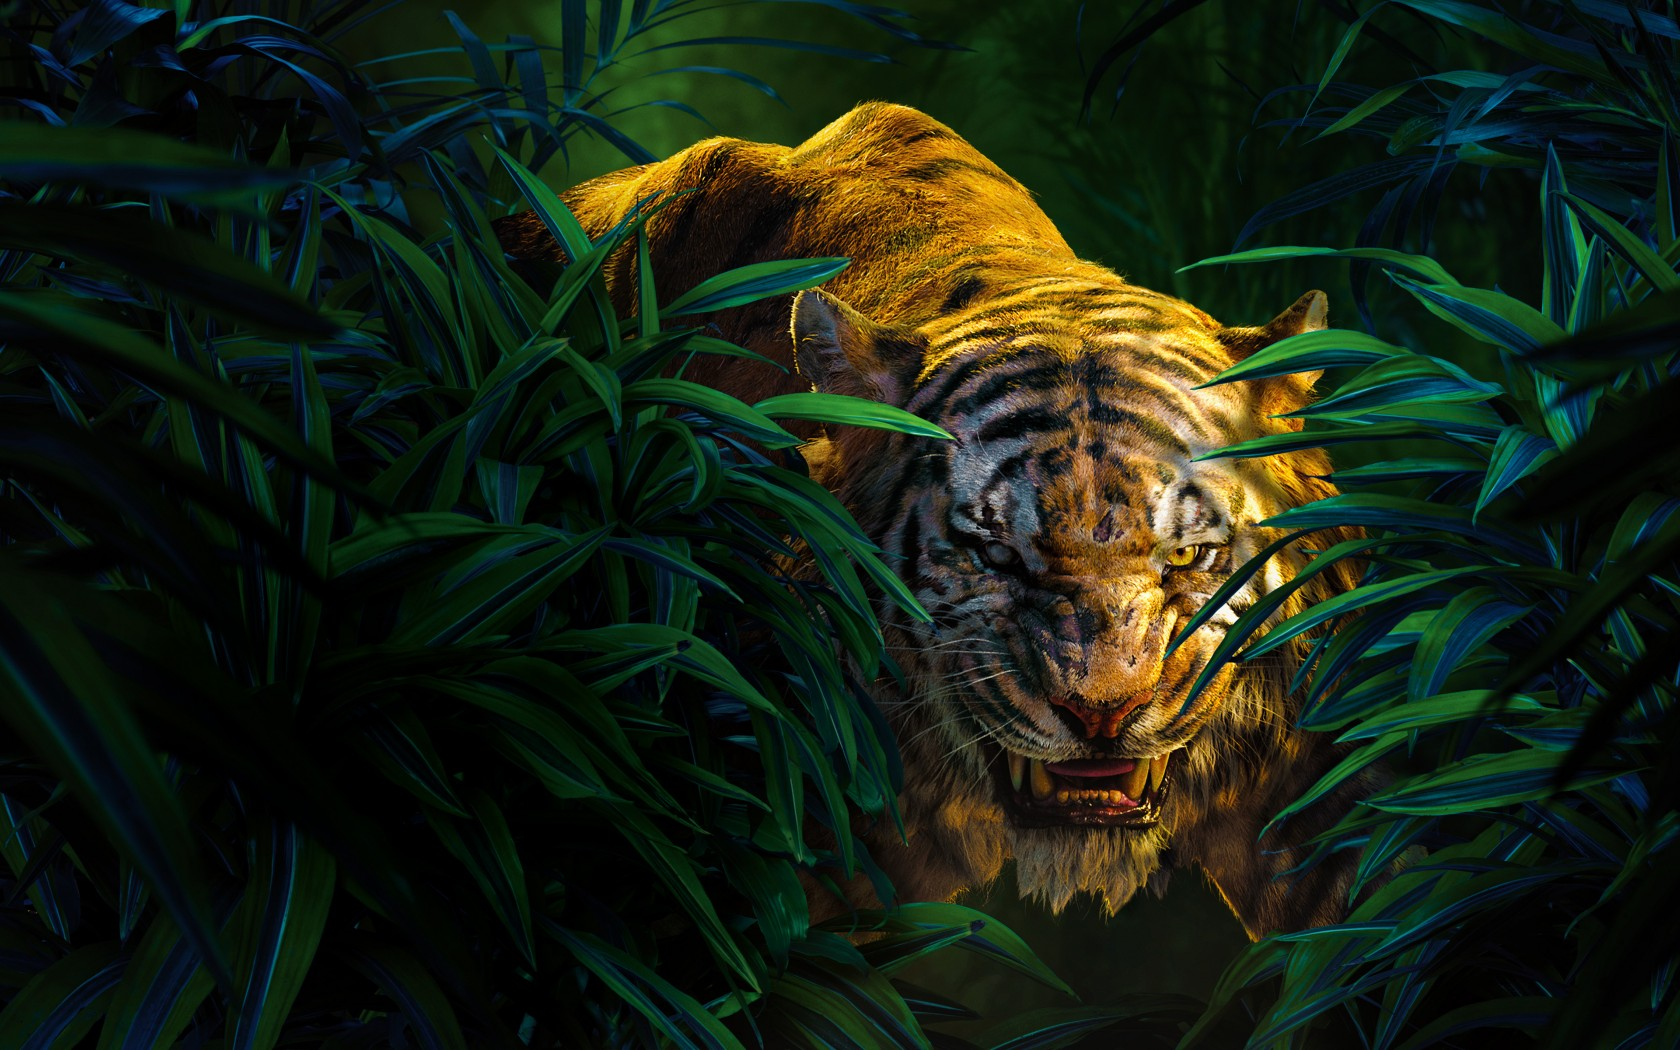 the jungle book shere khan wallpapers - 1680x1050 - 408695